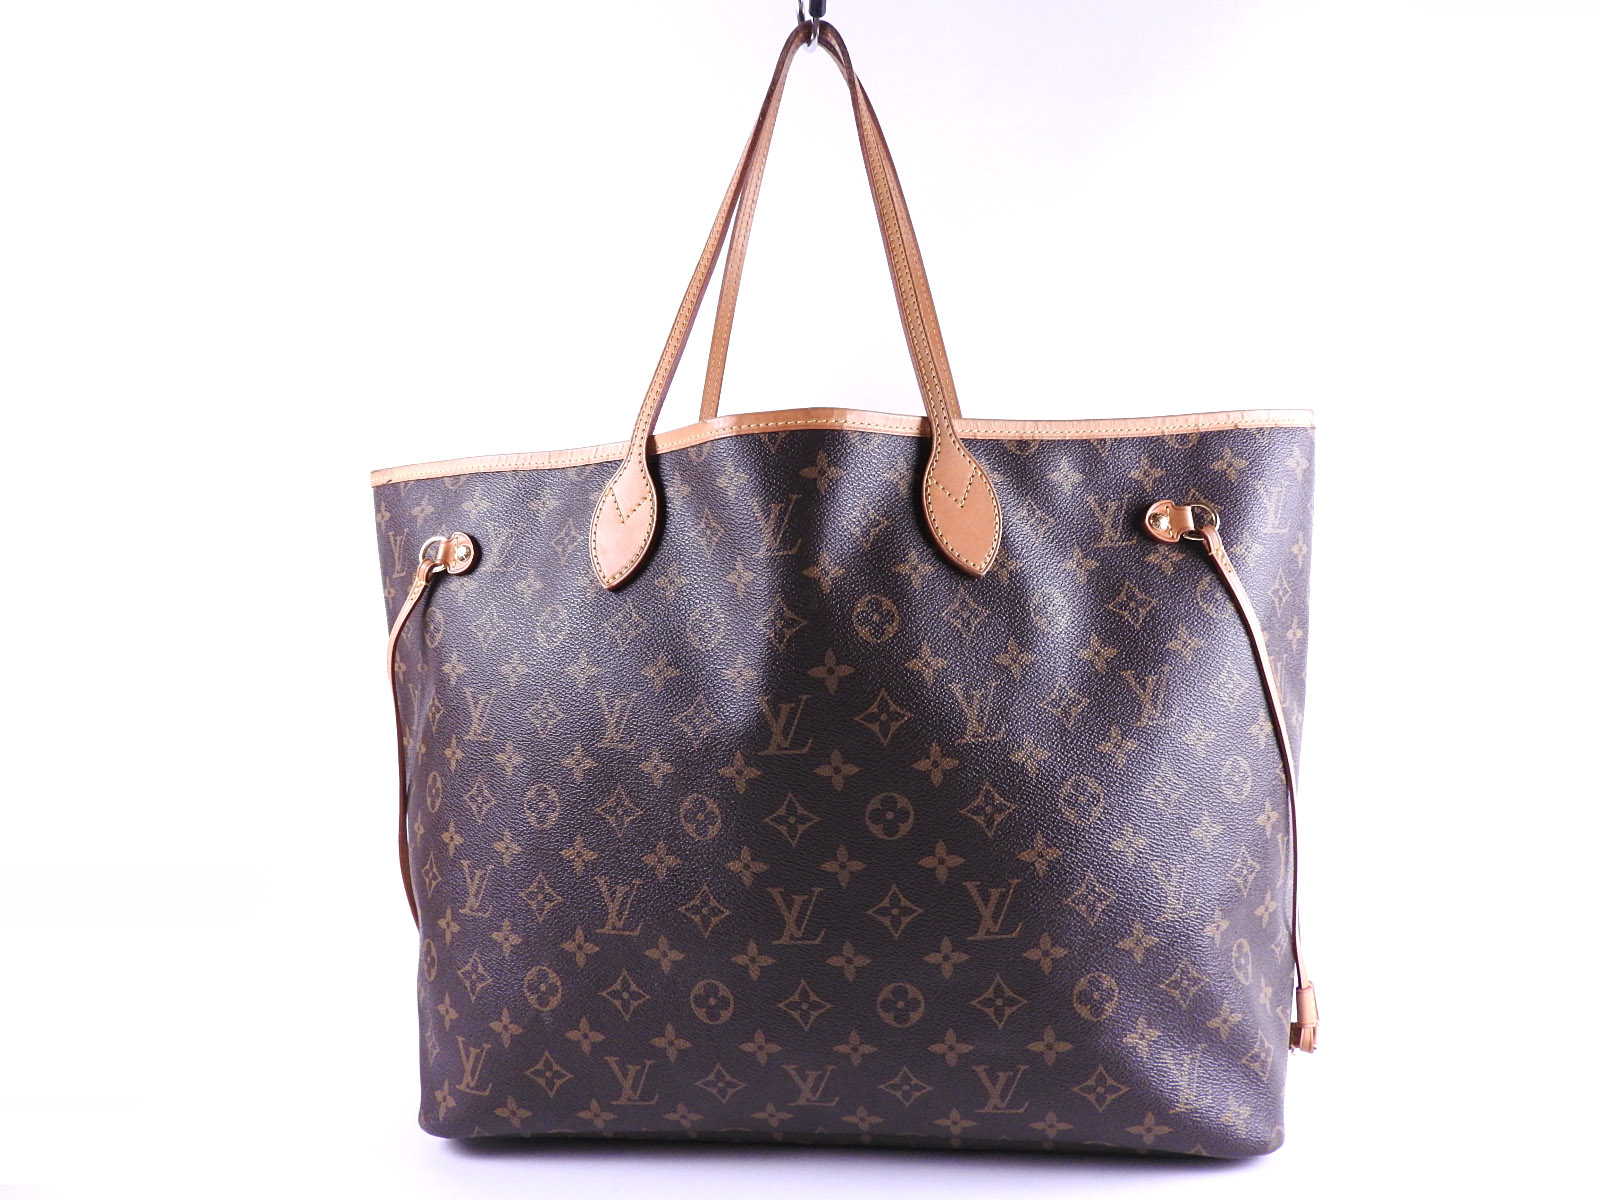 65e8ac0f8 Auth LOUIS VUITTON Neverfull GM Monogram Tote Bag Shoulder Bag With Pouch  M40990 A-8654